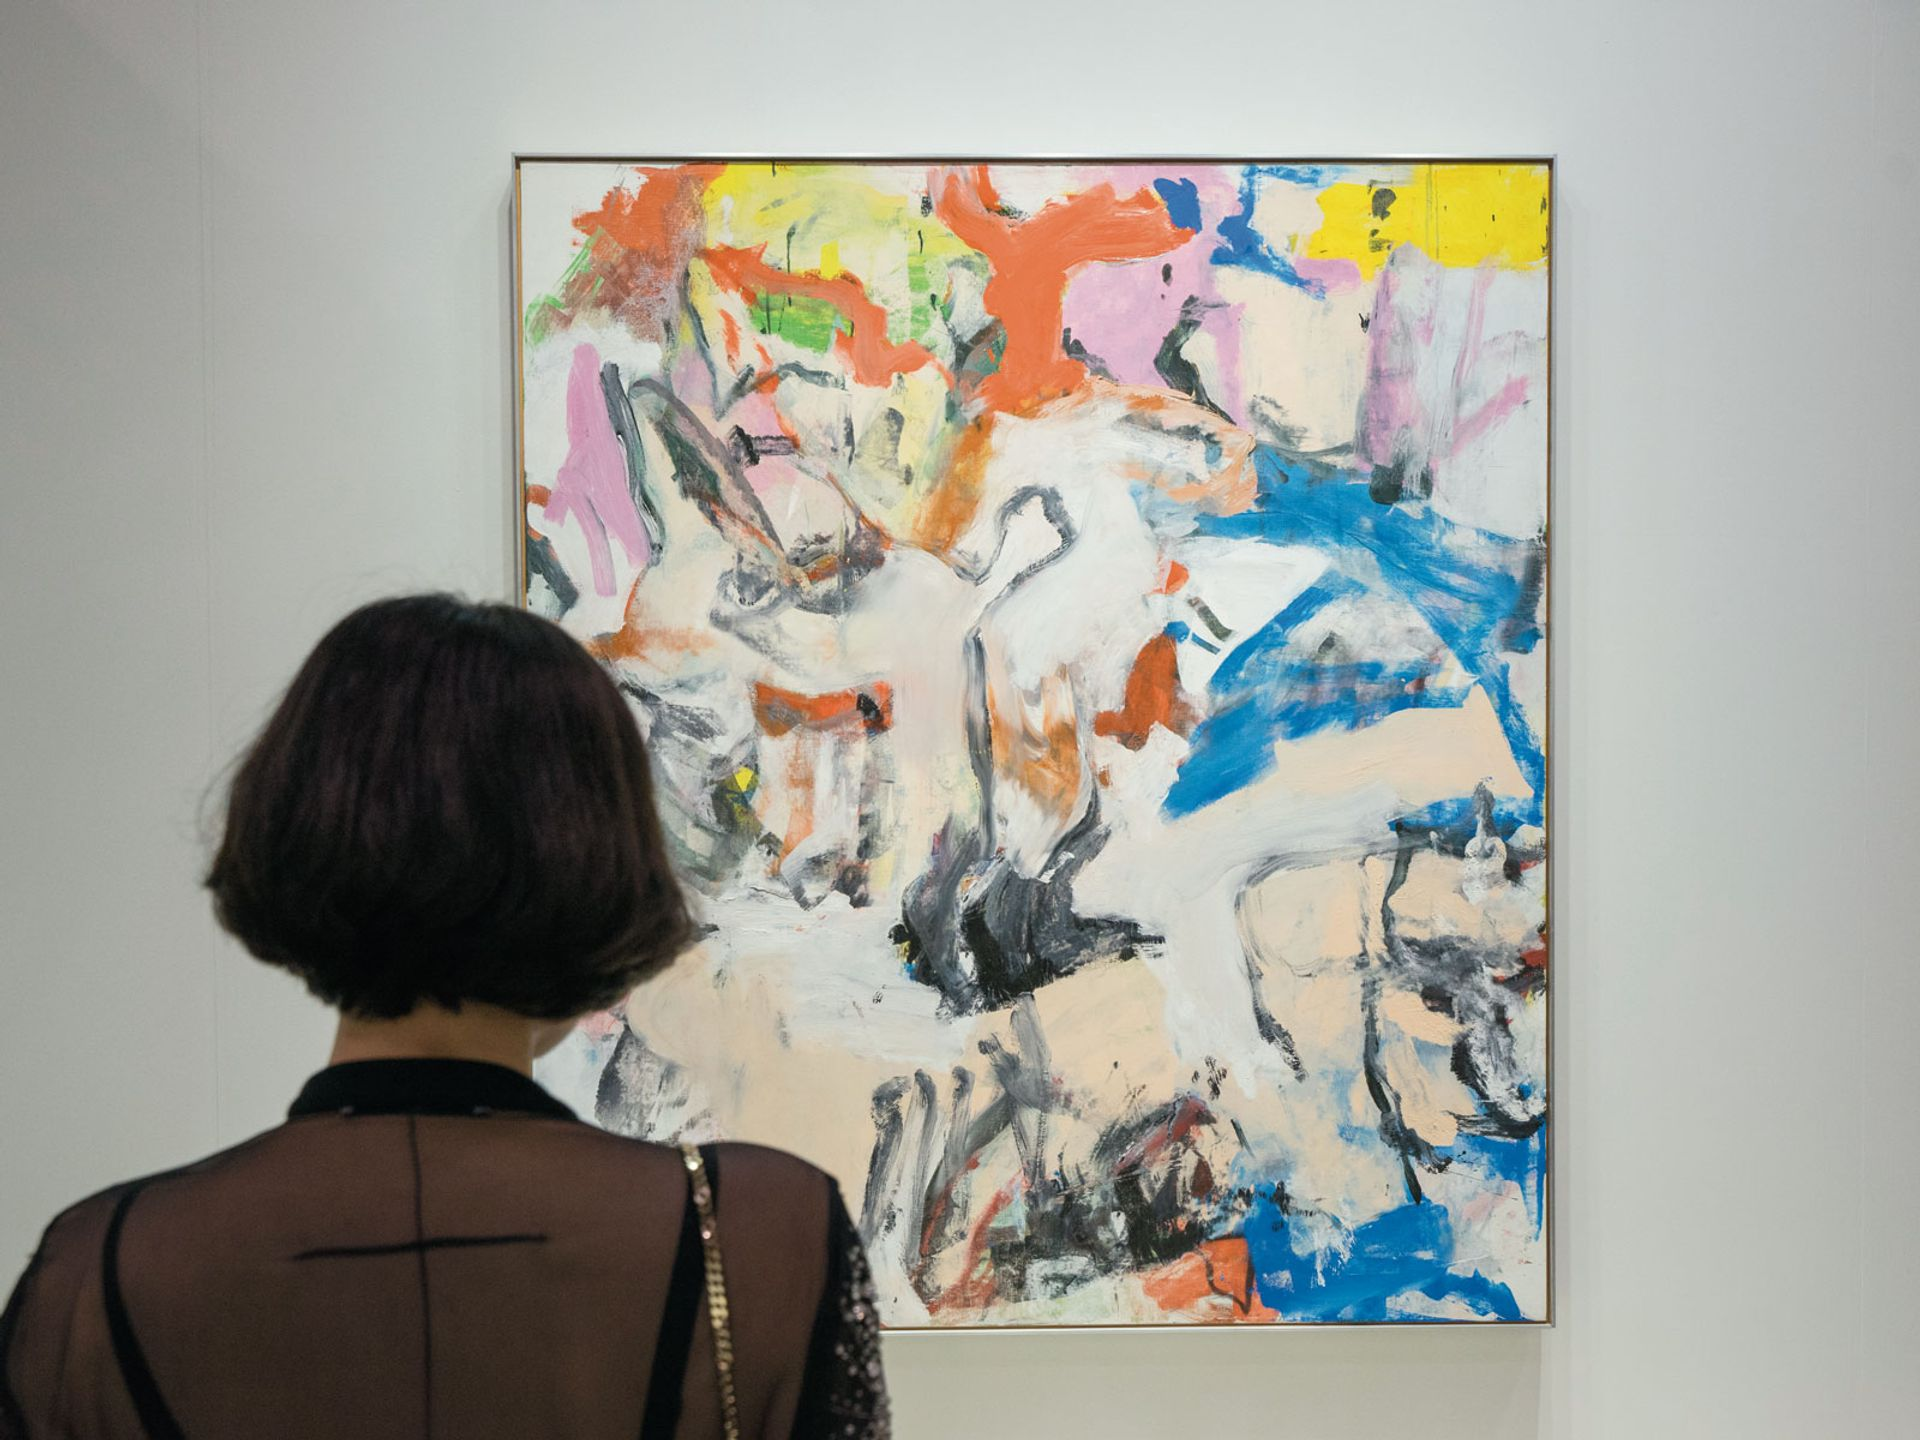 Willem de Kooning's Untitled XII (1975) sold for a price tag of $35m at the fair Liu Jingya